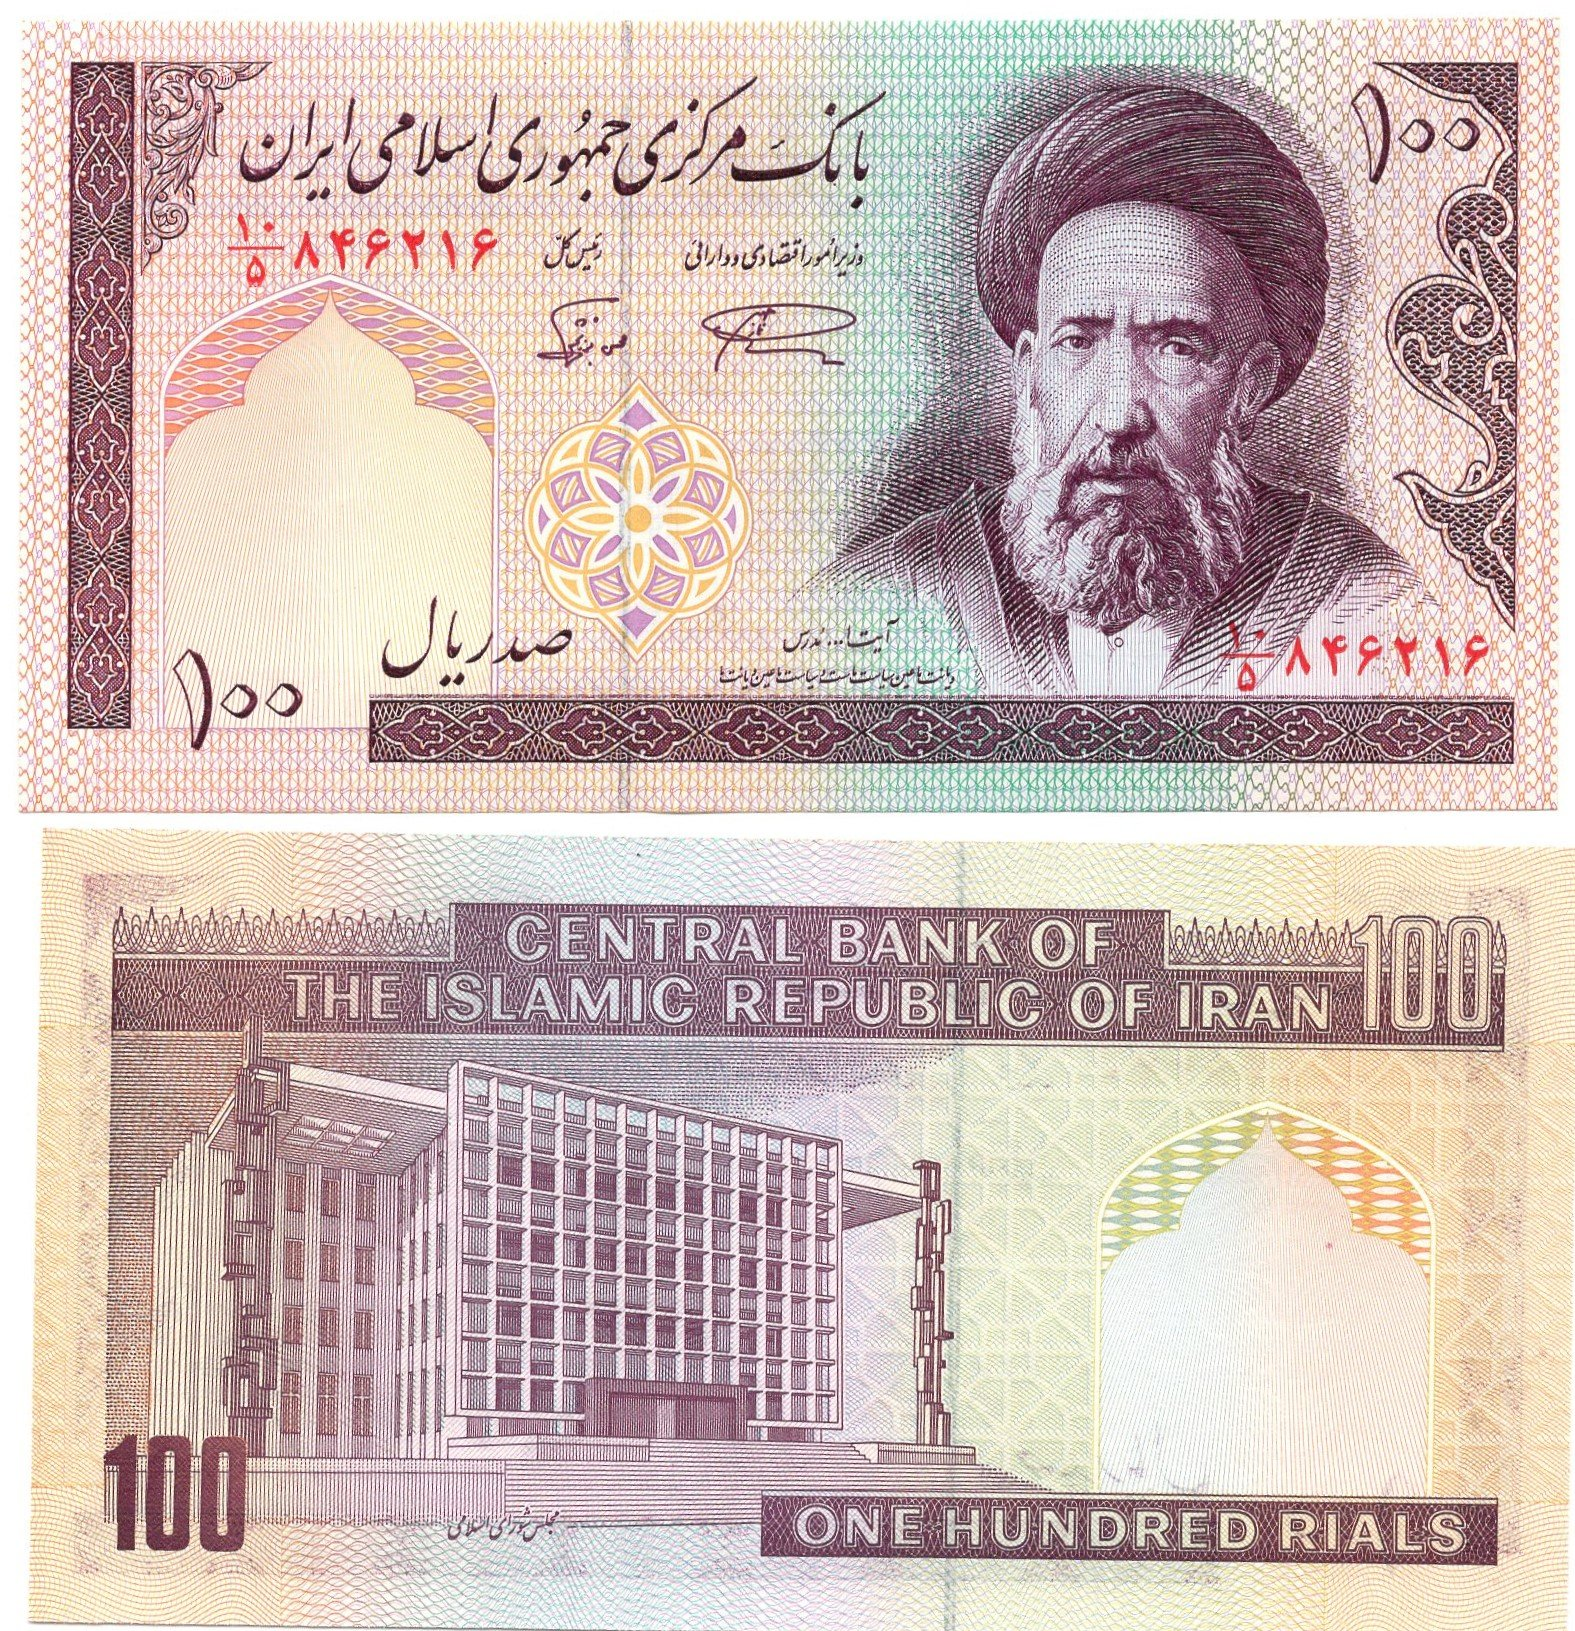 Iran 100 rials banknote for sale